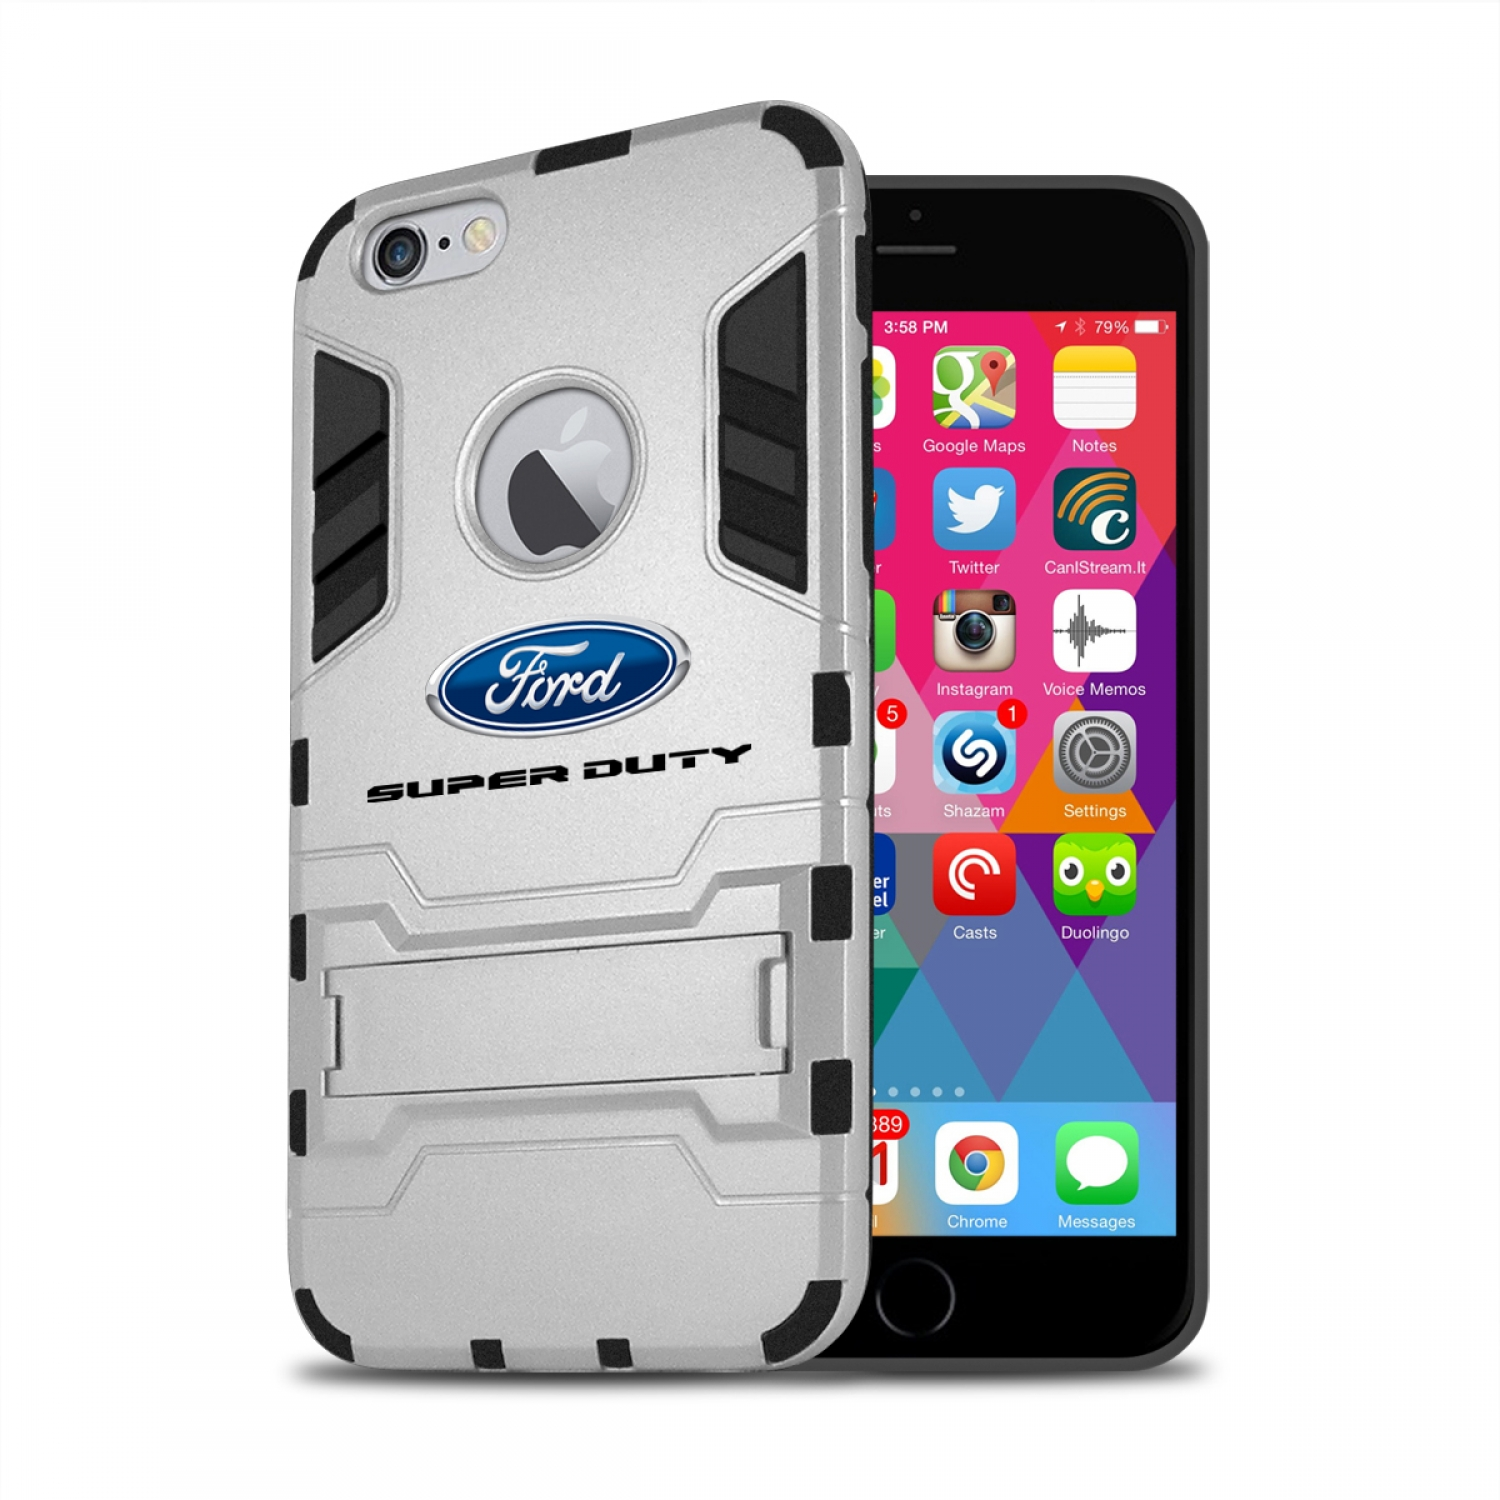 Ford Super Duty iPhone 6 6s Shockproof TPU ABS Hybrid Silver Phone Case